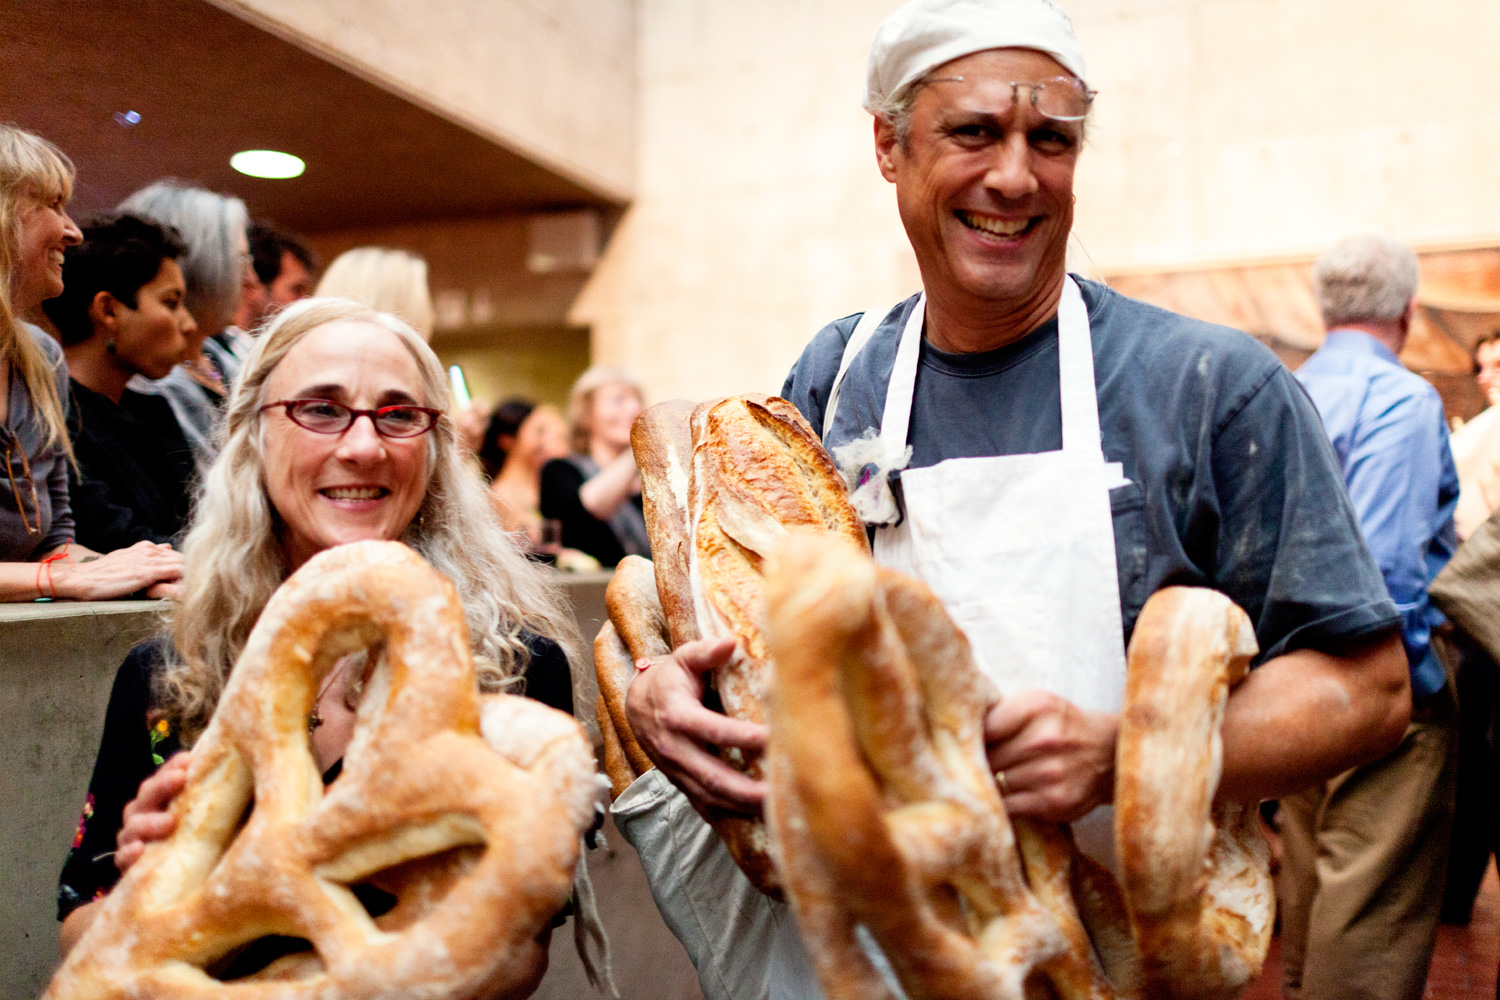 Edible Innovations: Steven and the Californian Baking Movement